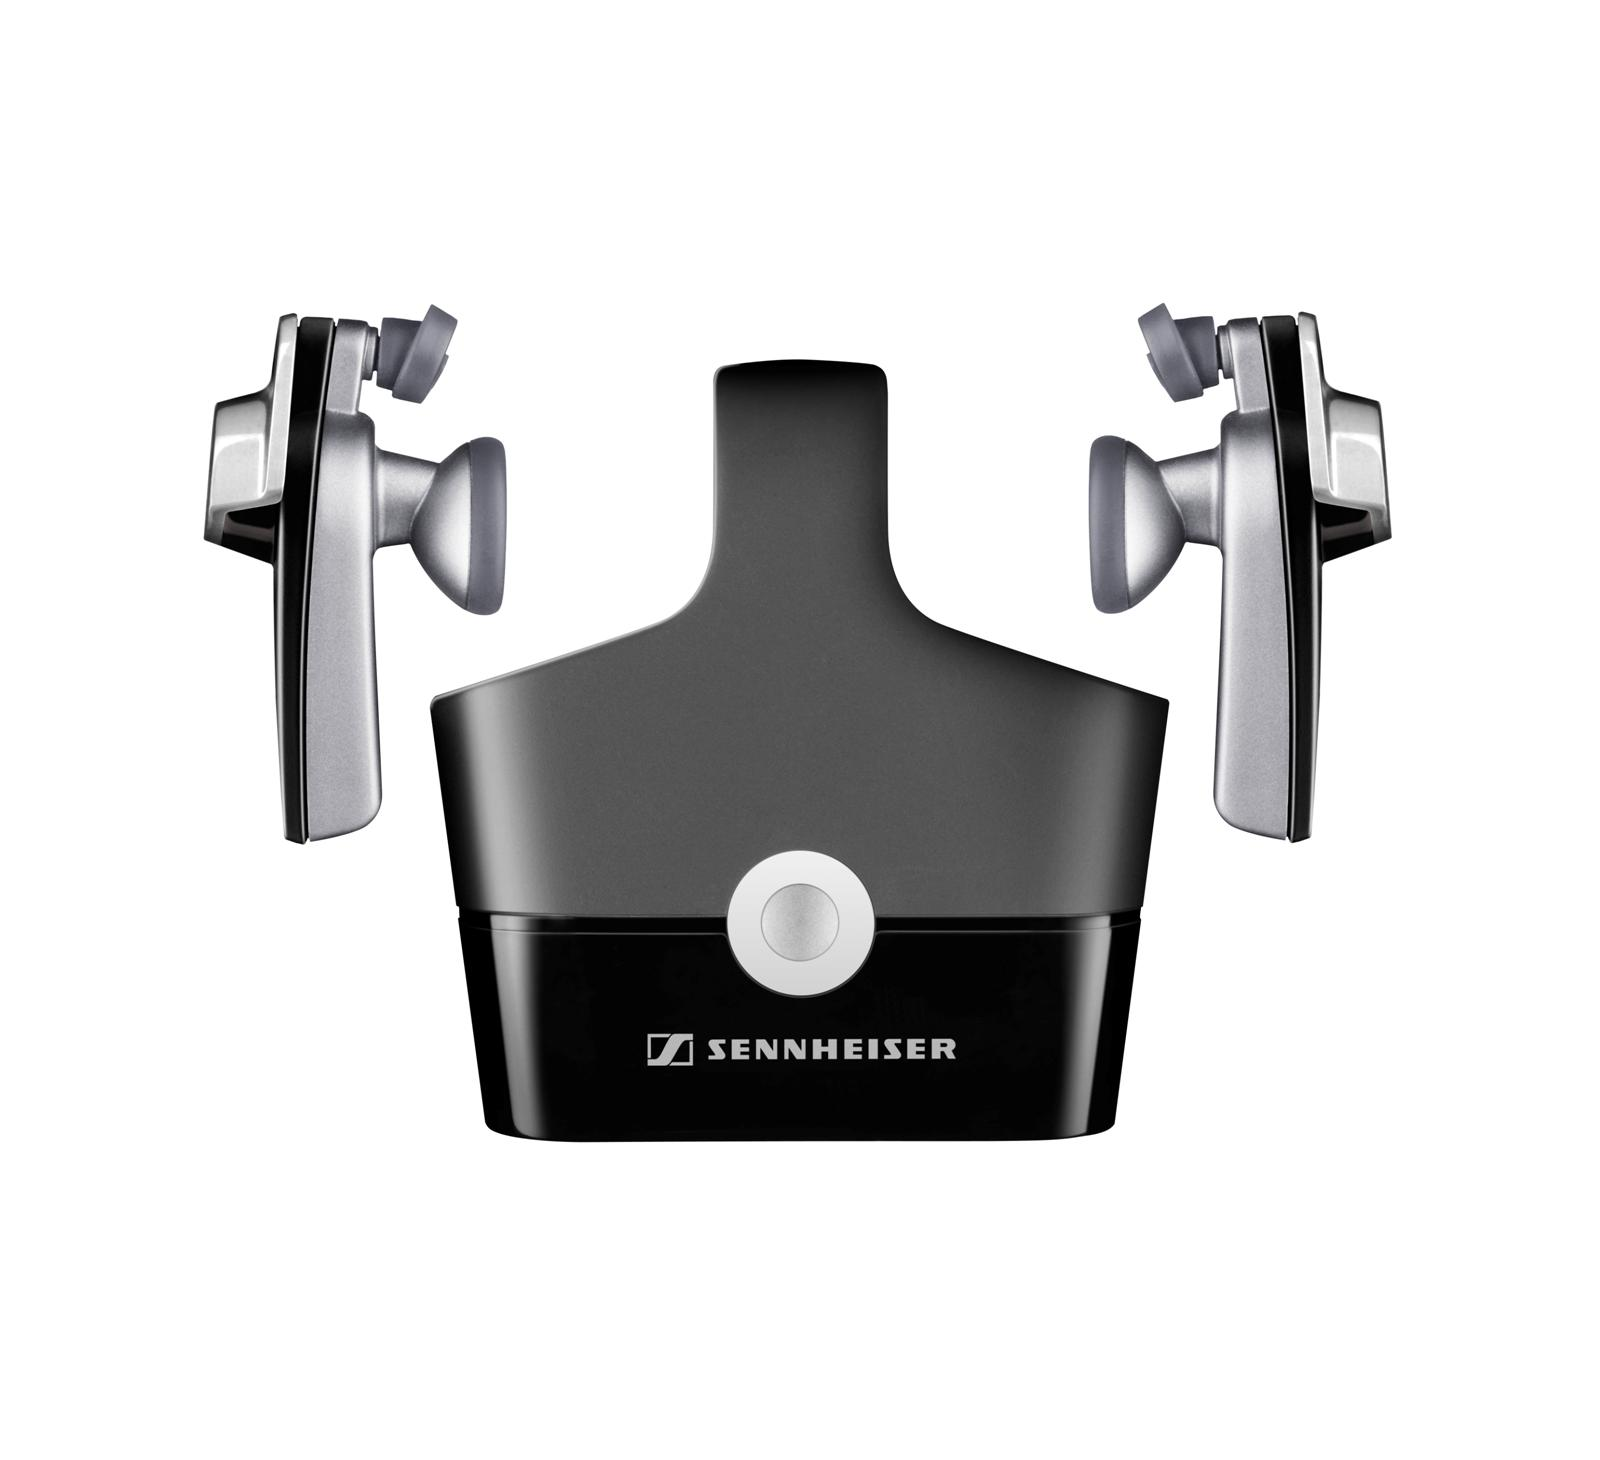 sennheiser mx w1 couteurs sans fil kleer. Black Bedroom Furniture Sets. Home Design Ideas